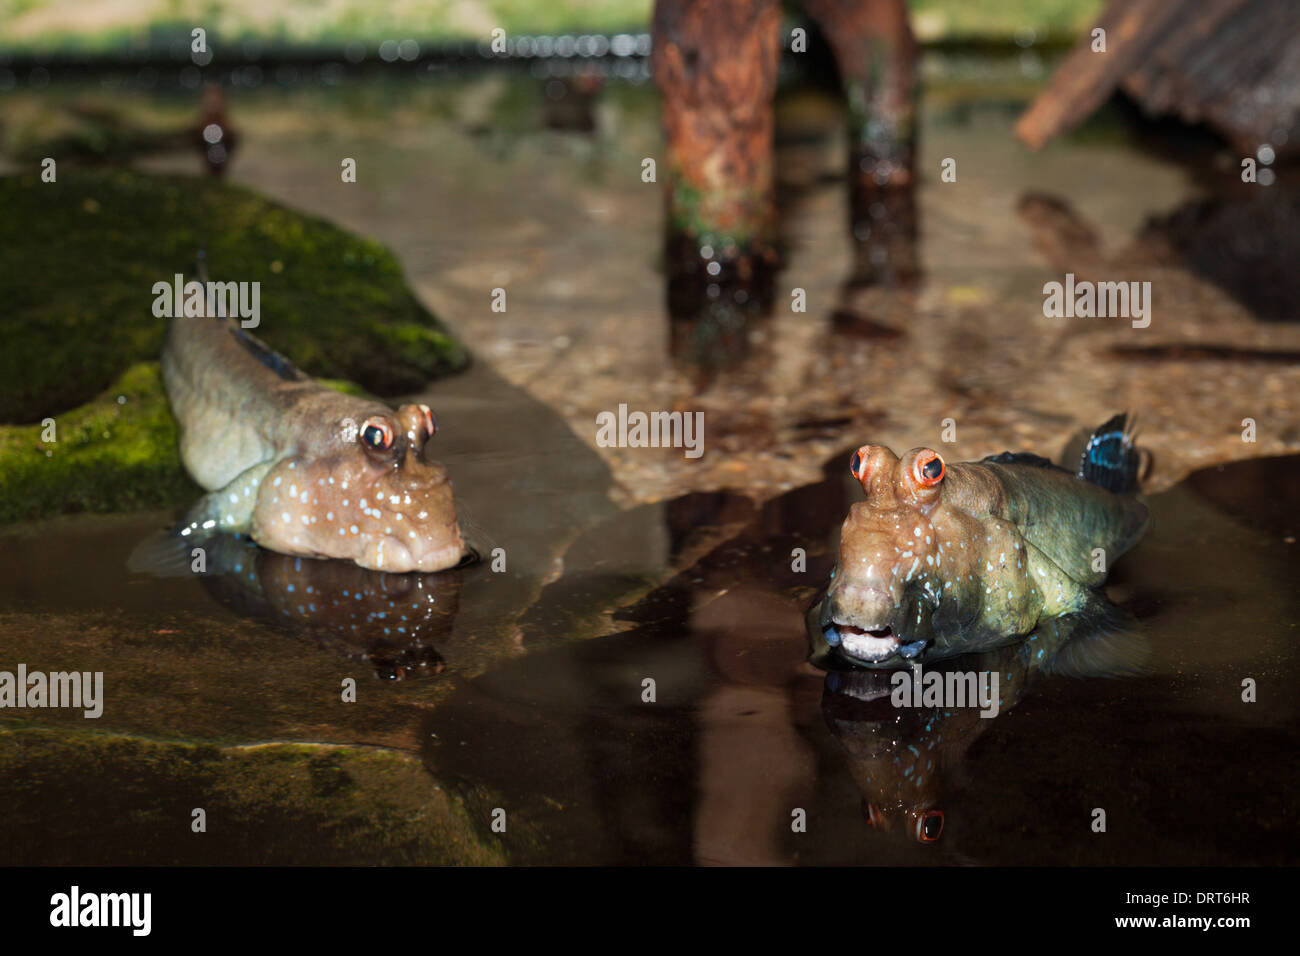 Mudskipper, Periophthalmus spec., Mozambique - Stock Image